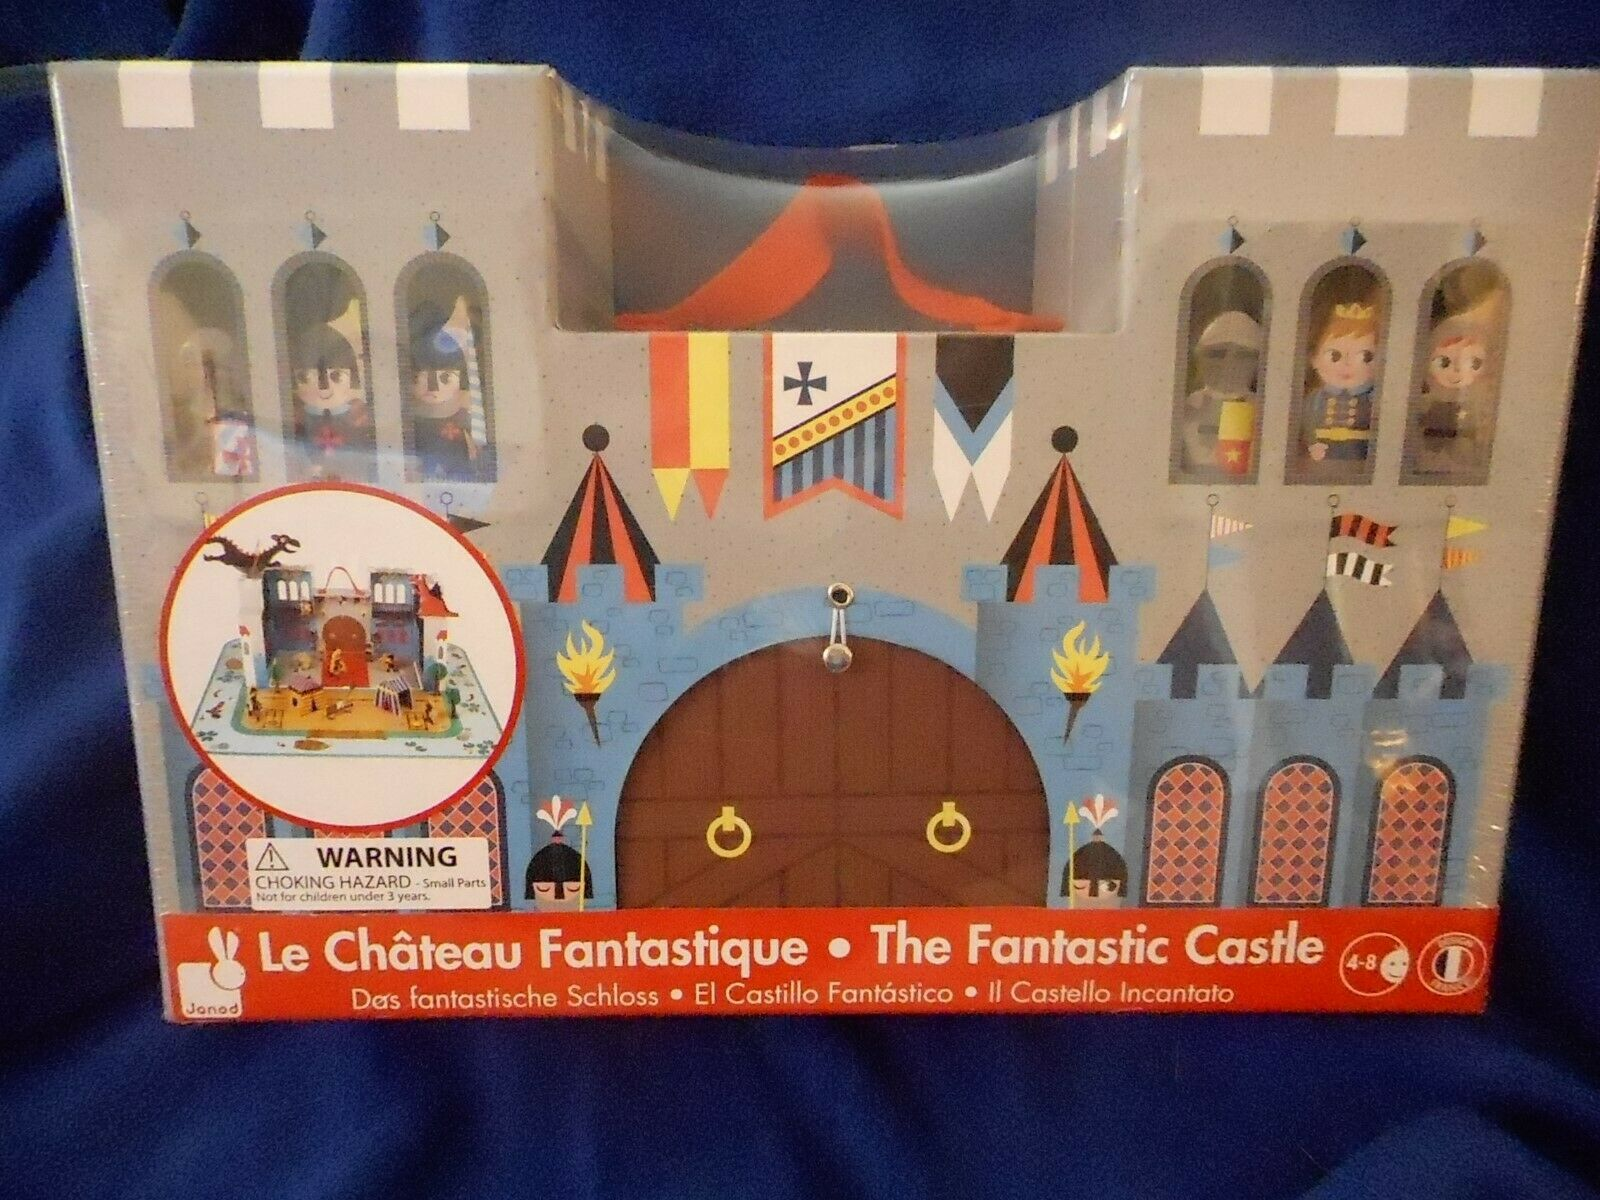 The Fantastic Castle play set for ages 4-8 Sturdy Cardboard